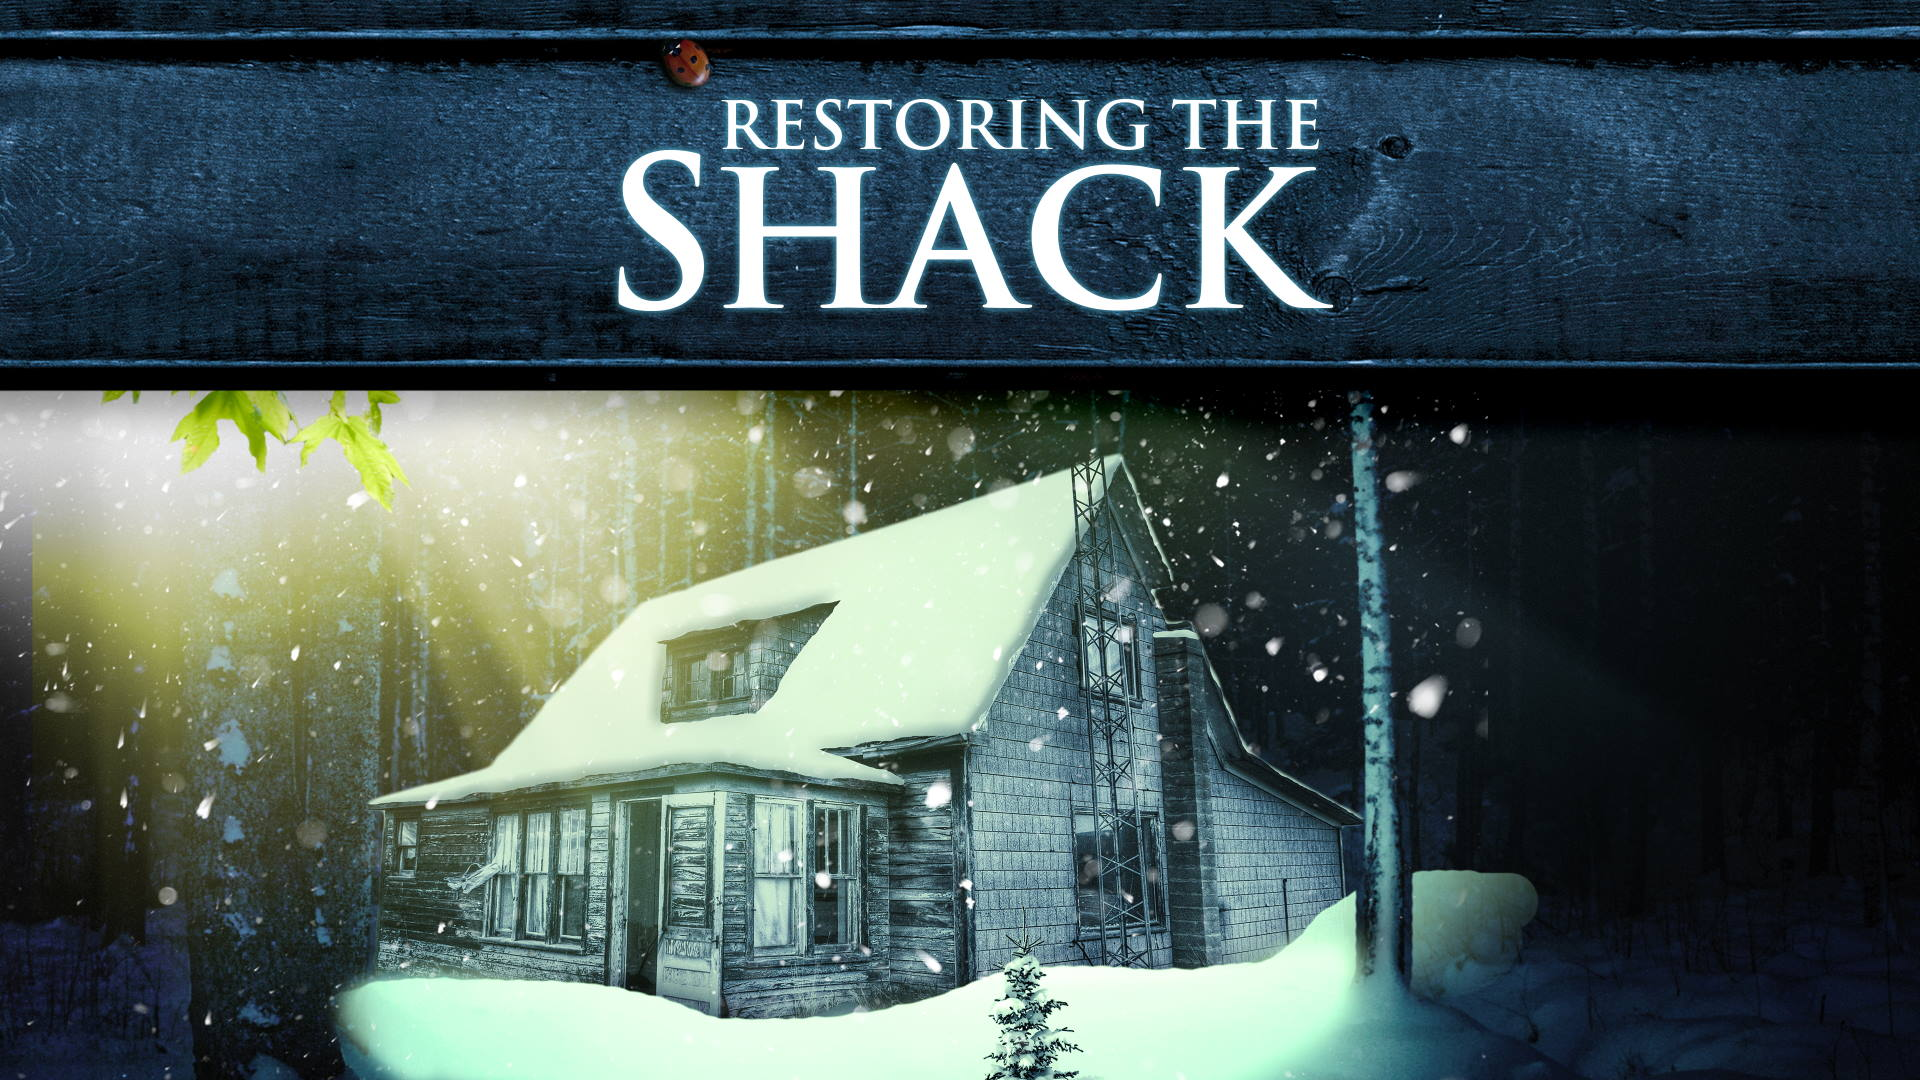 Restoring the Shack Ep 1. An Invitation